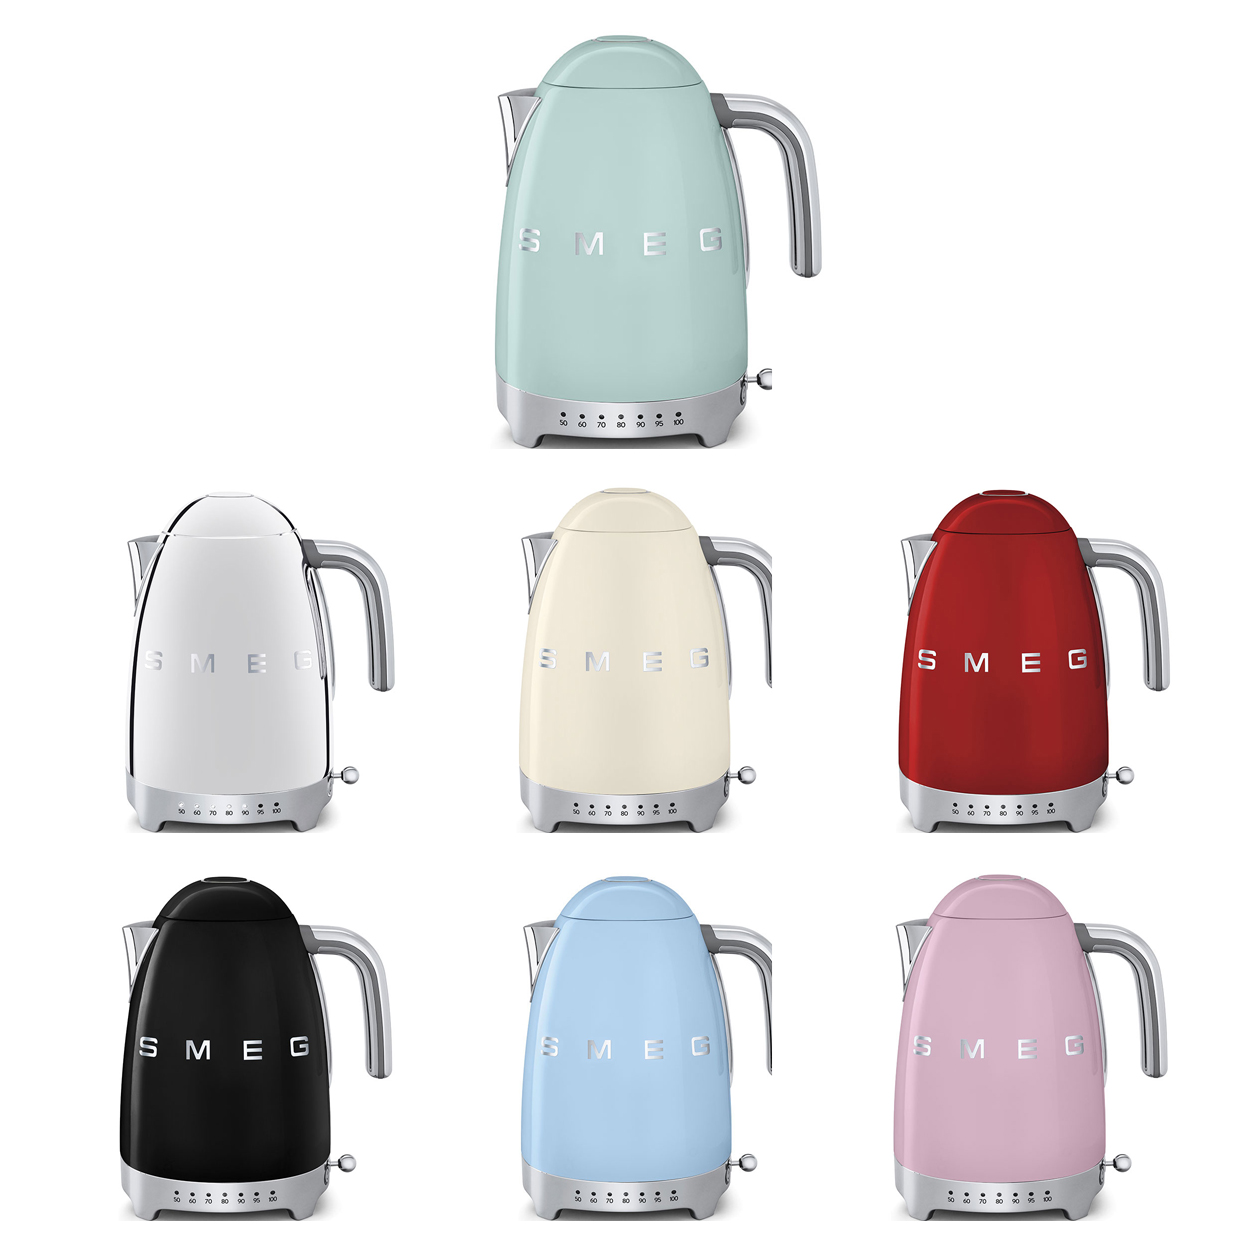 Smeg kettle variable temperature in different colours